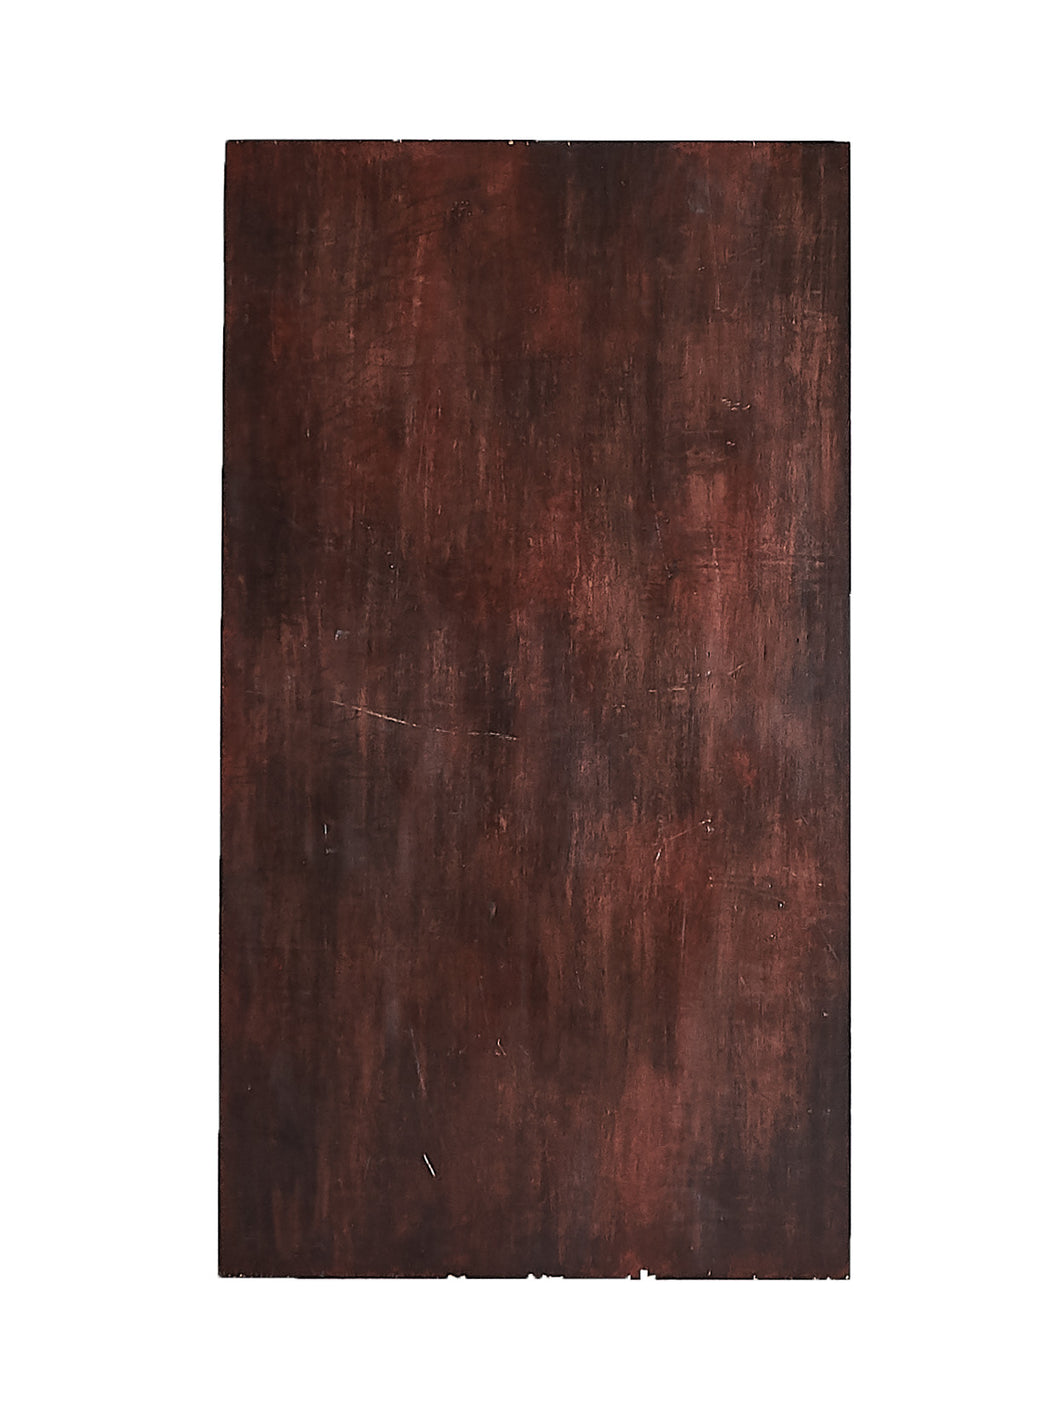 Md Pocked/Brushed Red Wood